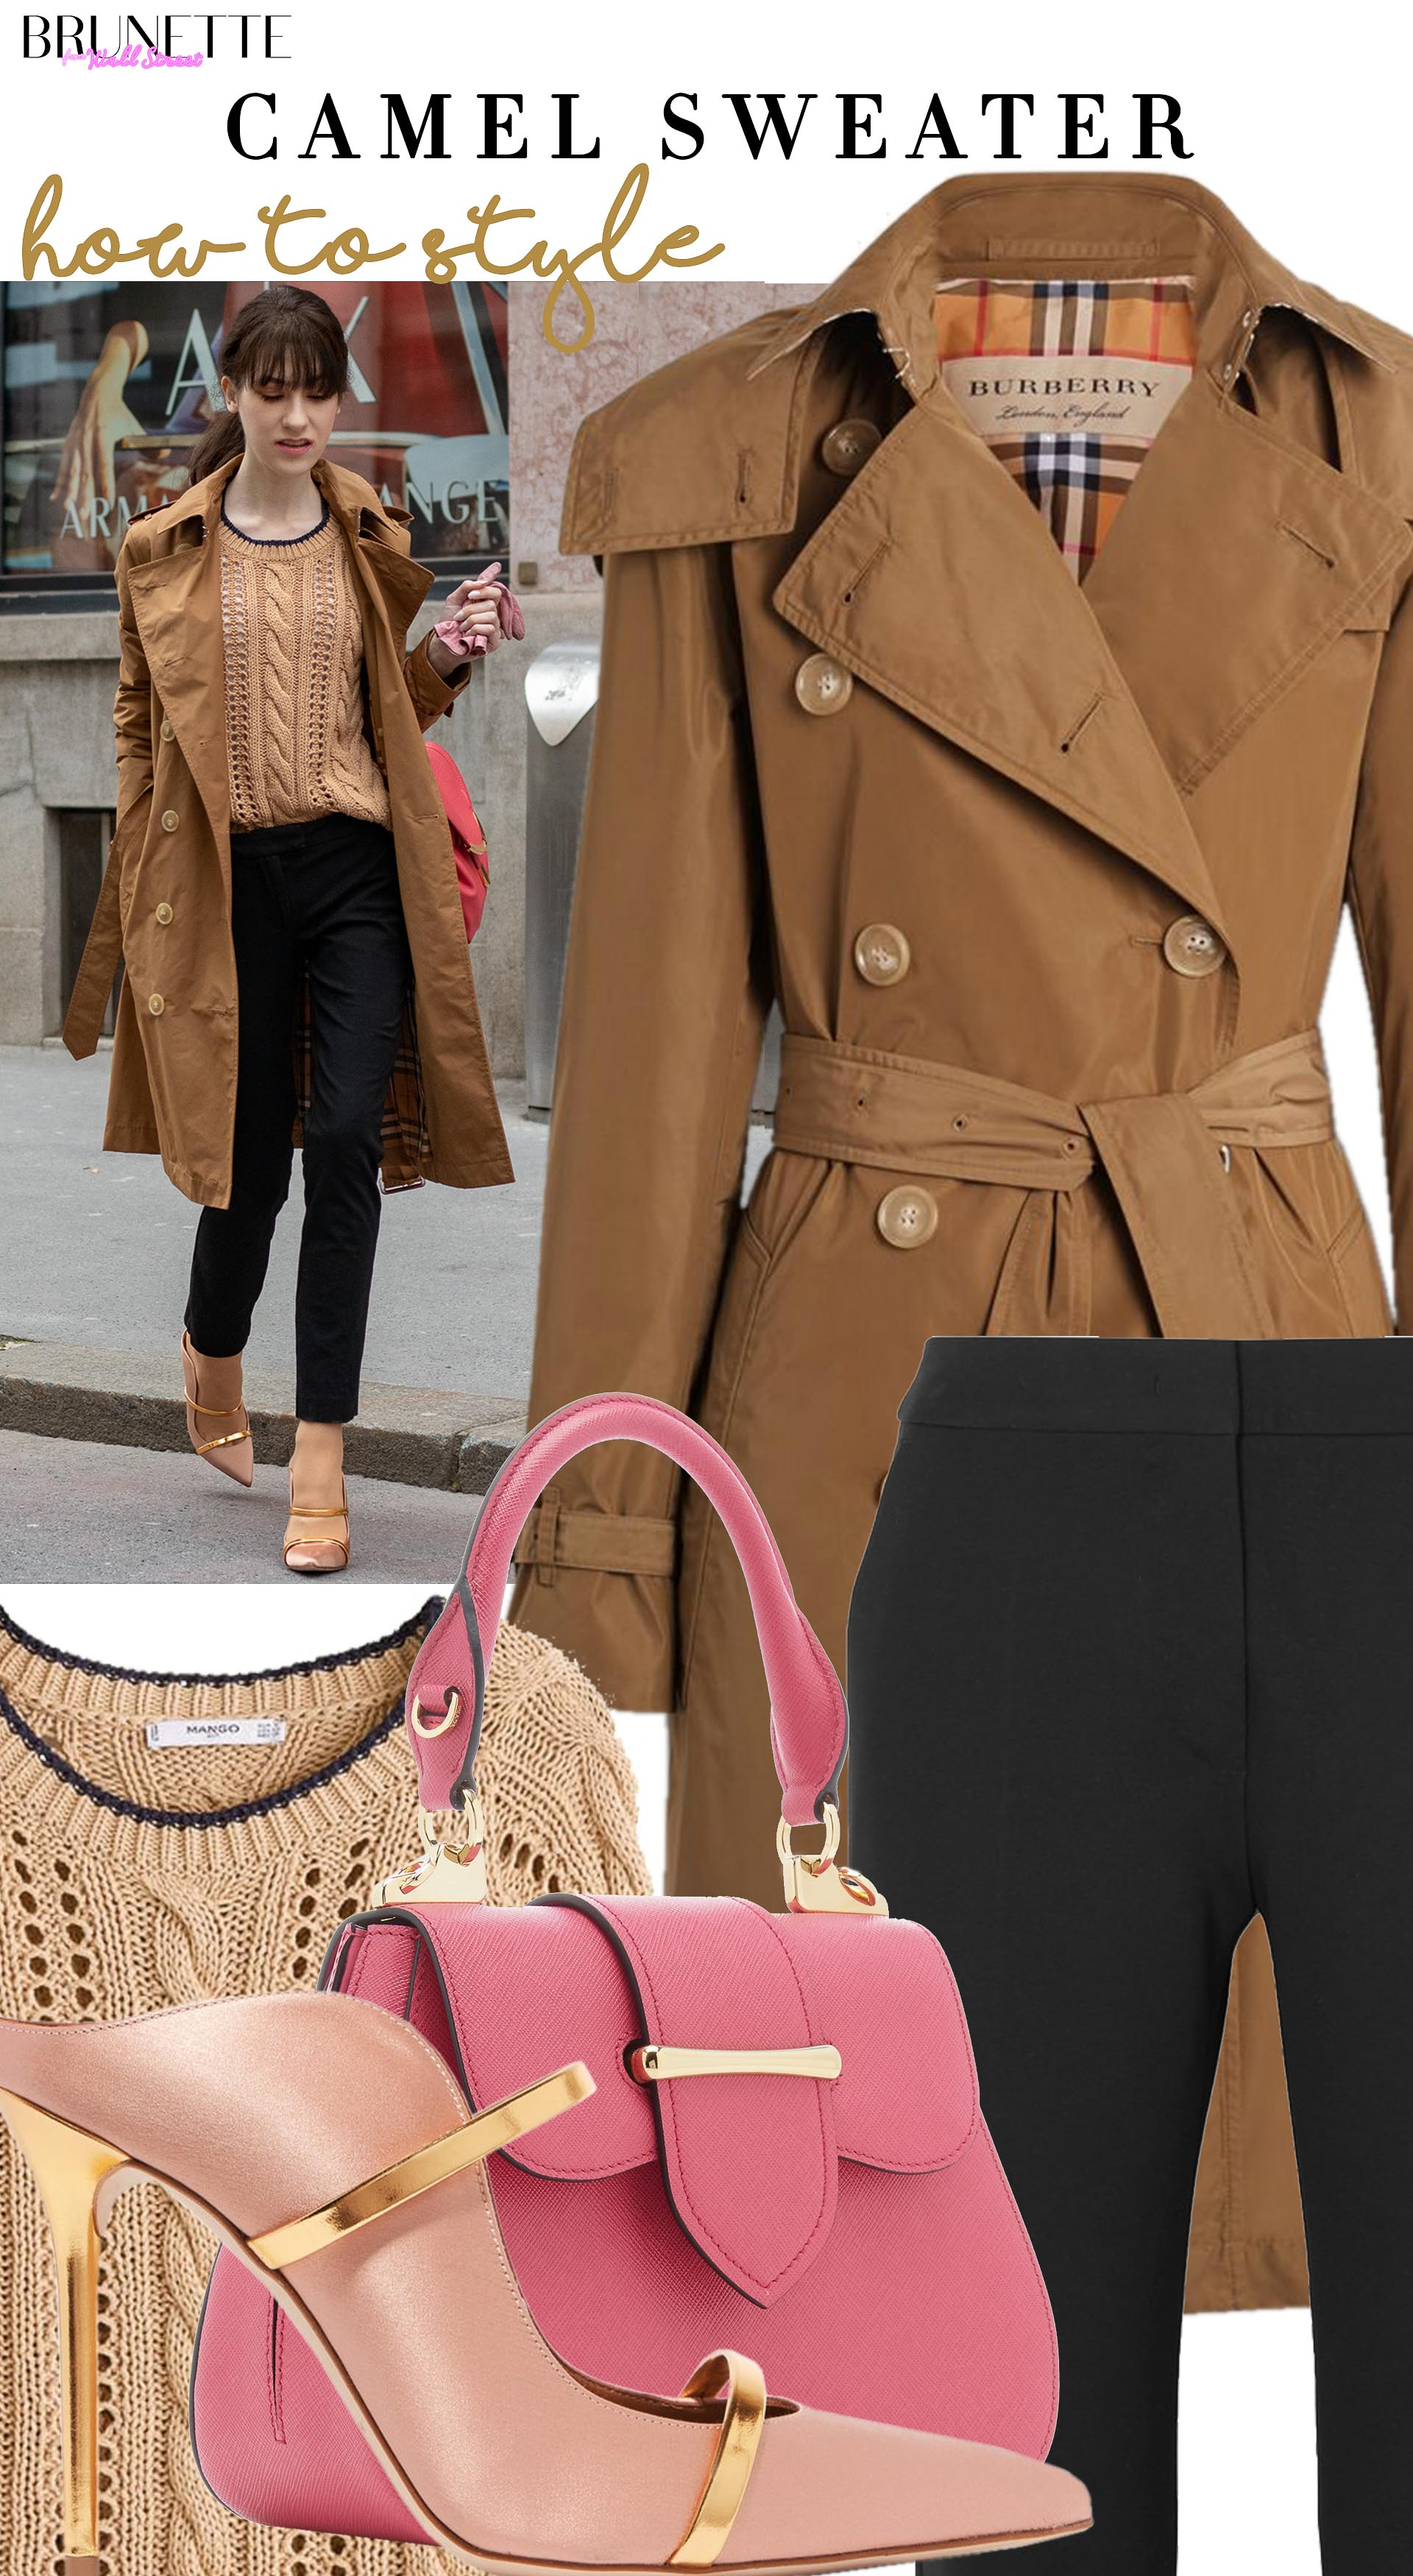 Brunette from Wall Street how to style camel sweater Burberry trench coat prada bag malone souliers mules black pants for work